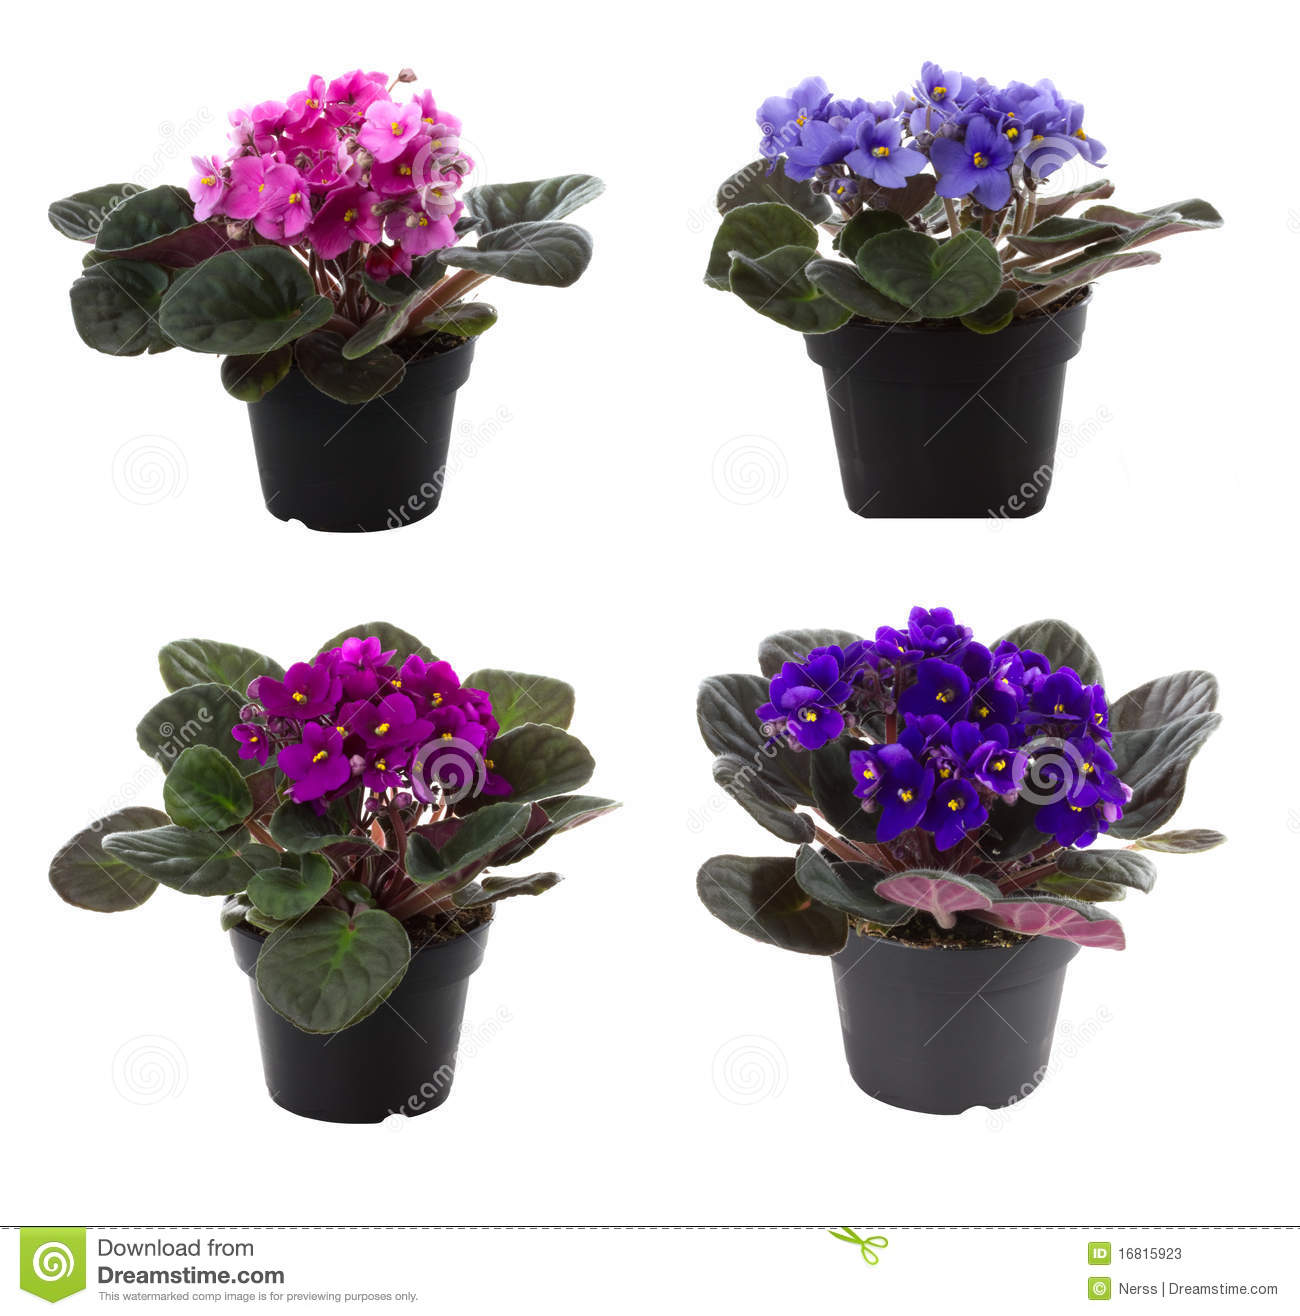 Potted flowers saintpaulia flower, isolated on white background.